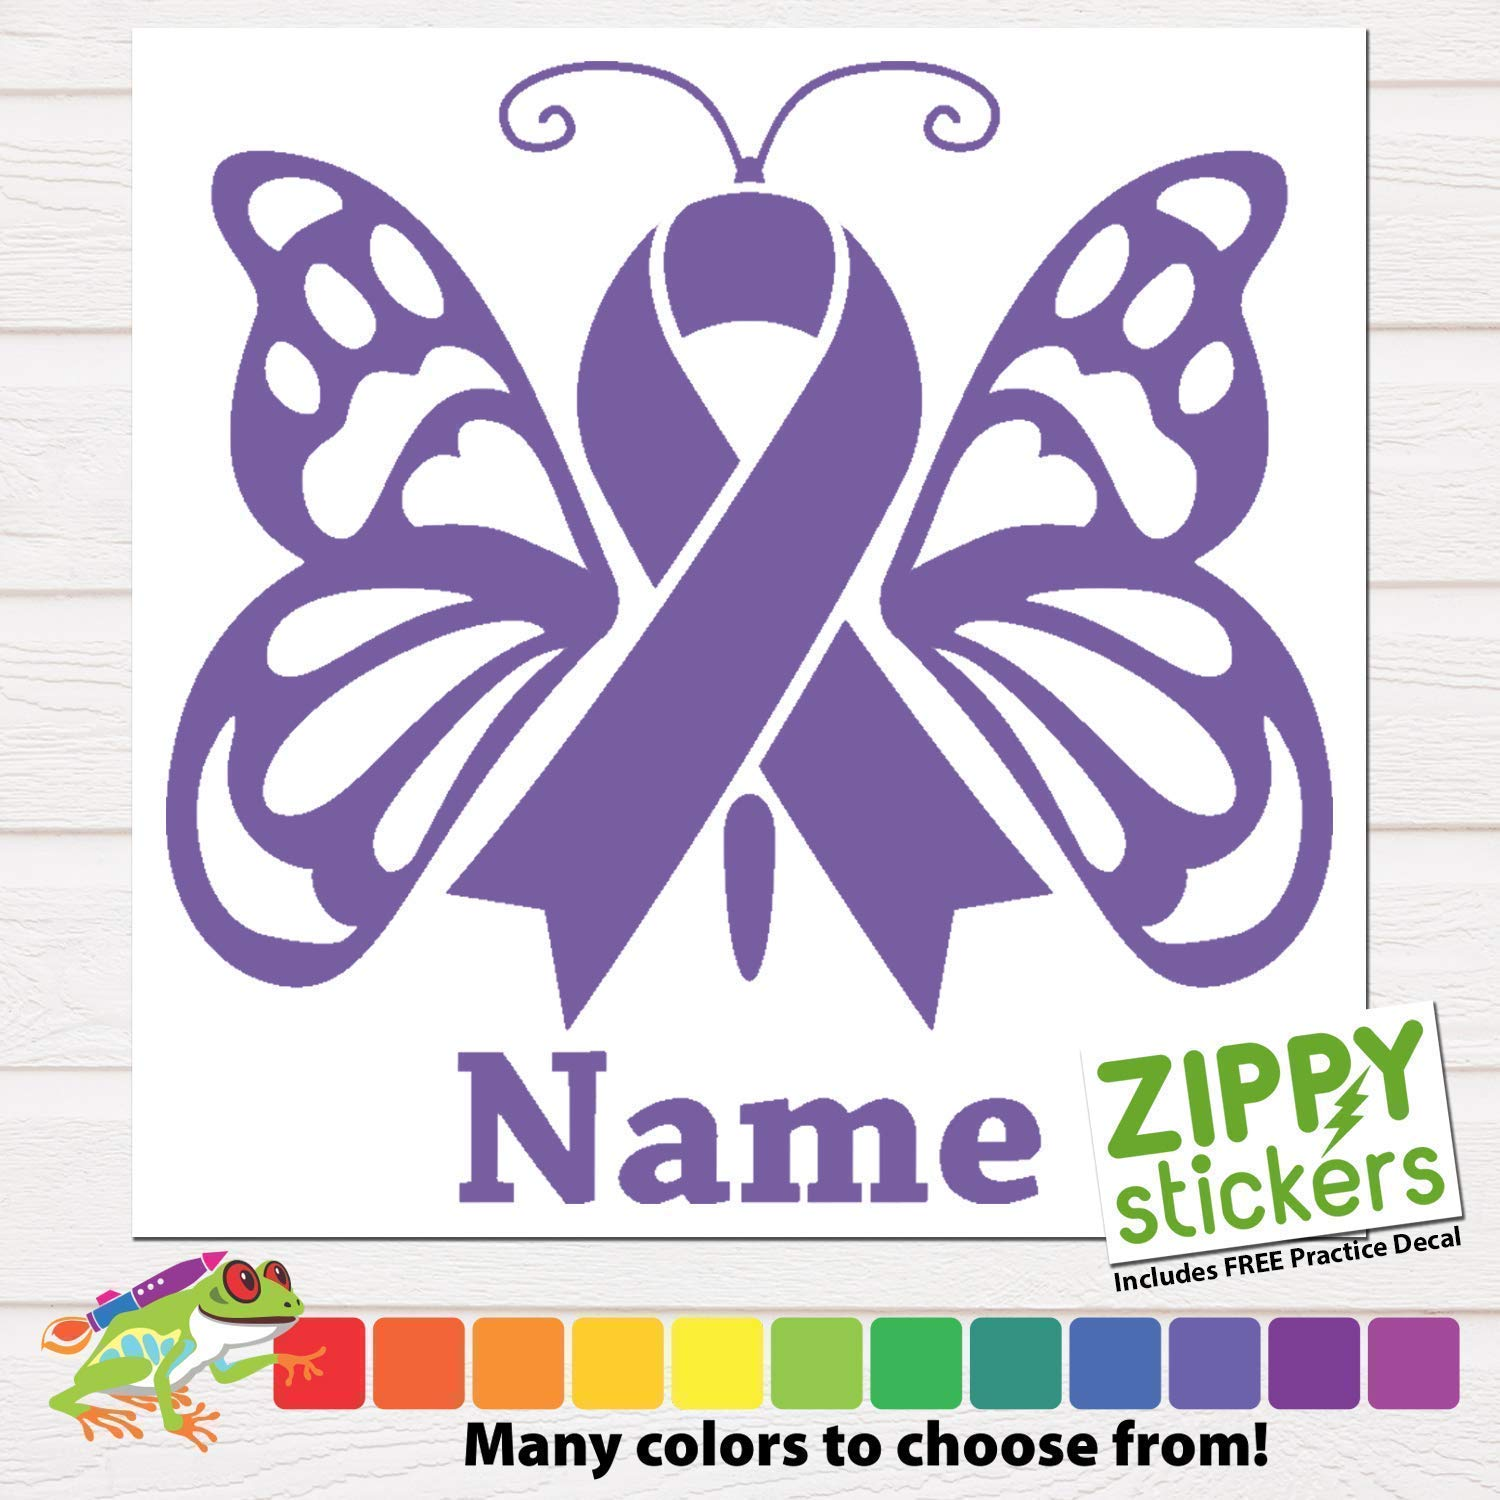 Custom cancer memorial memoriam butterfly ribbon vinyl decal sticker with name cancer ribbon decal in memory of butterfly personalized for car windows